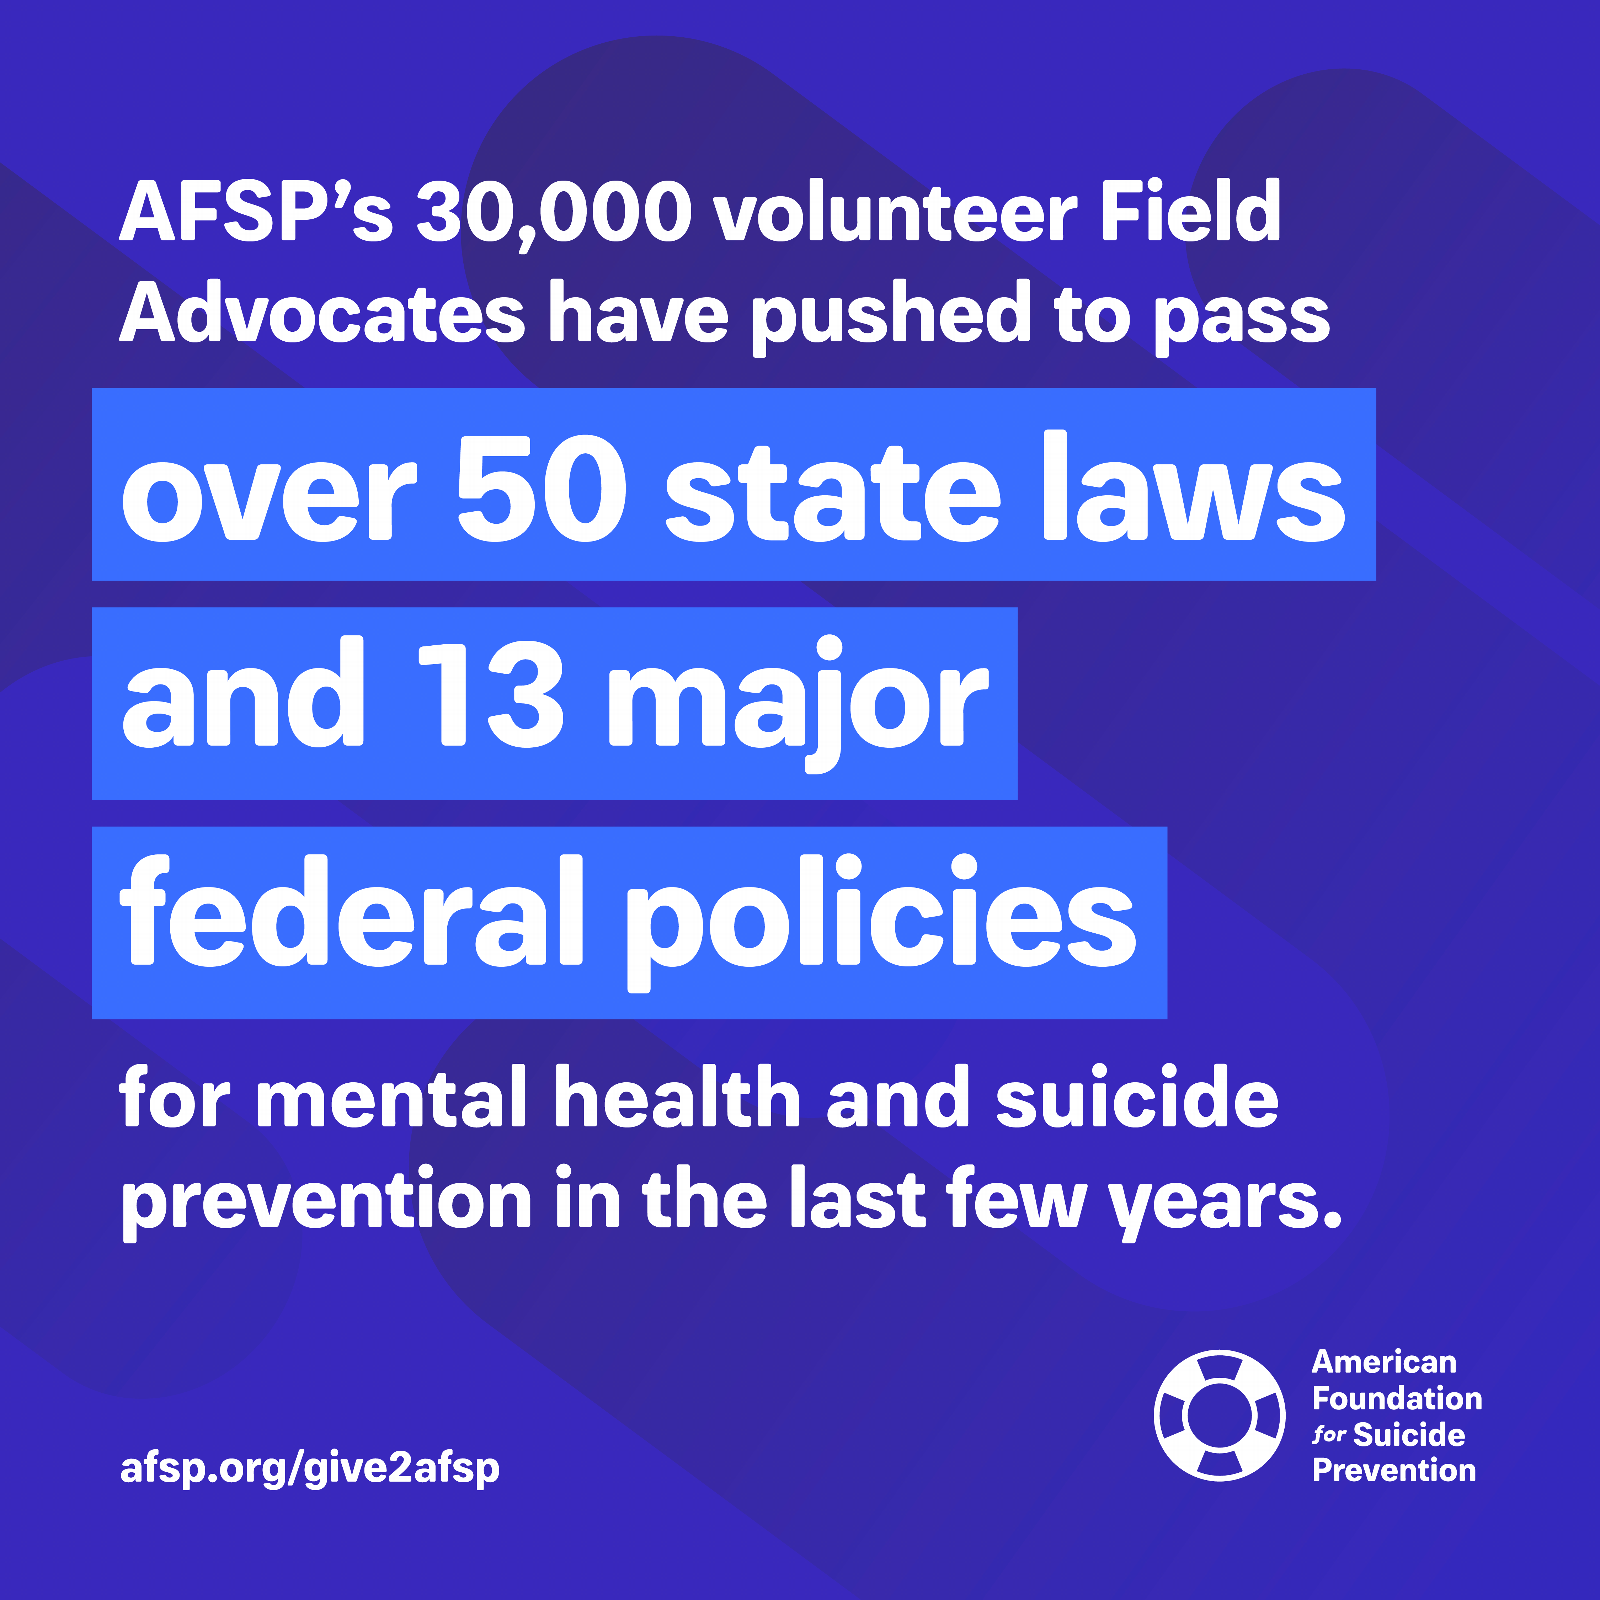 AFSP's 30,000 volunteer Field Advocates have pushed to pass over 50 state laws and 13 major federal policies for mental health and suicide prevention in the last few years.